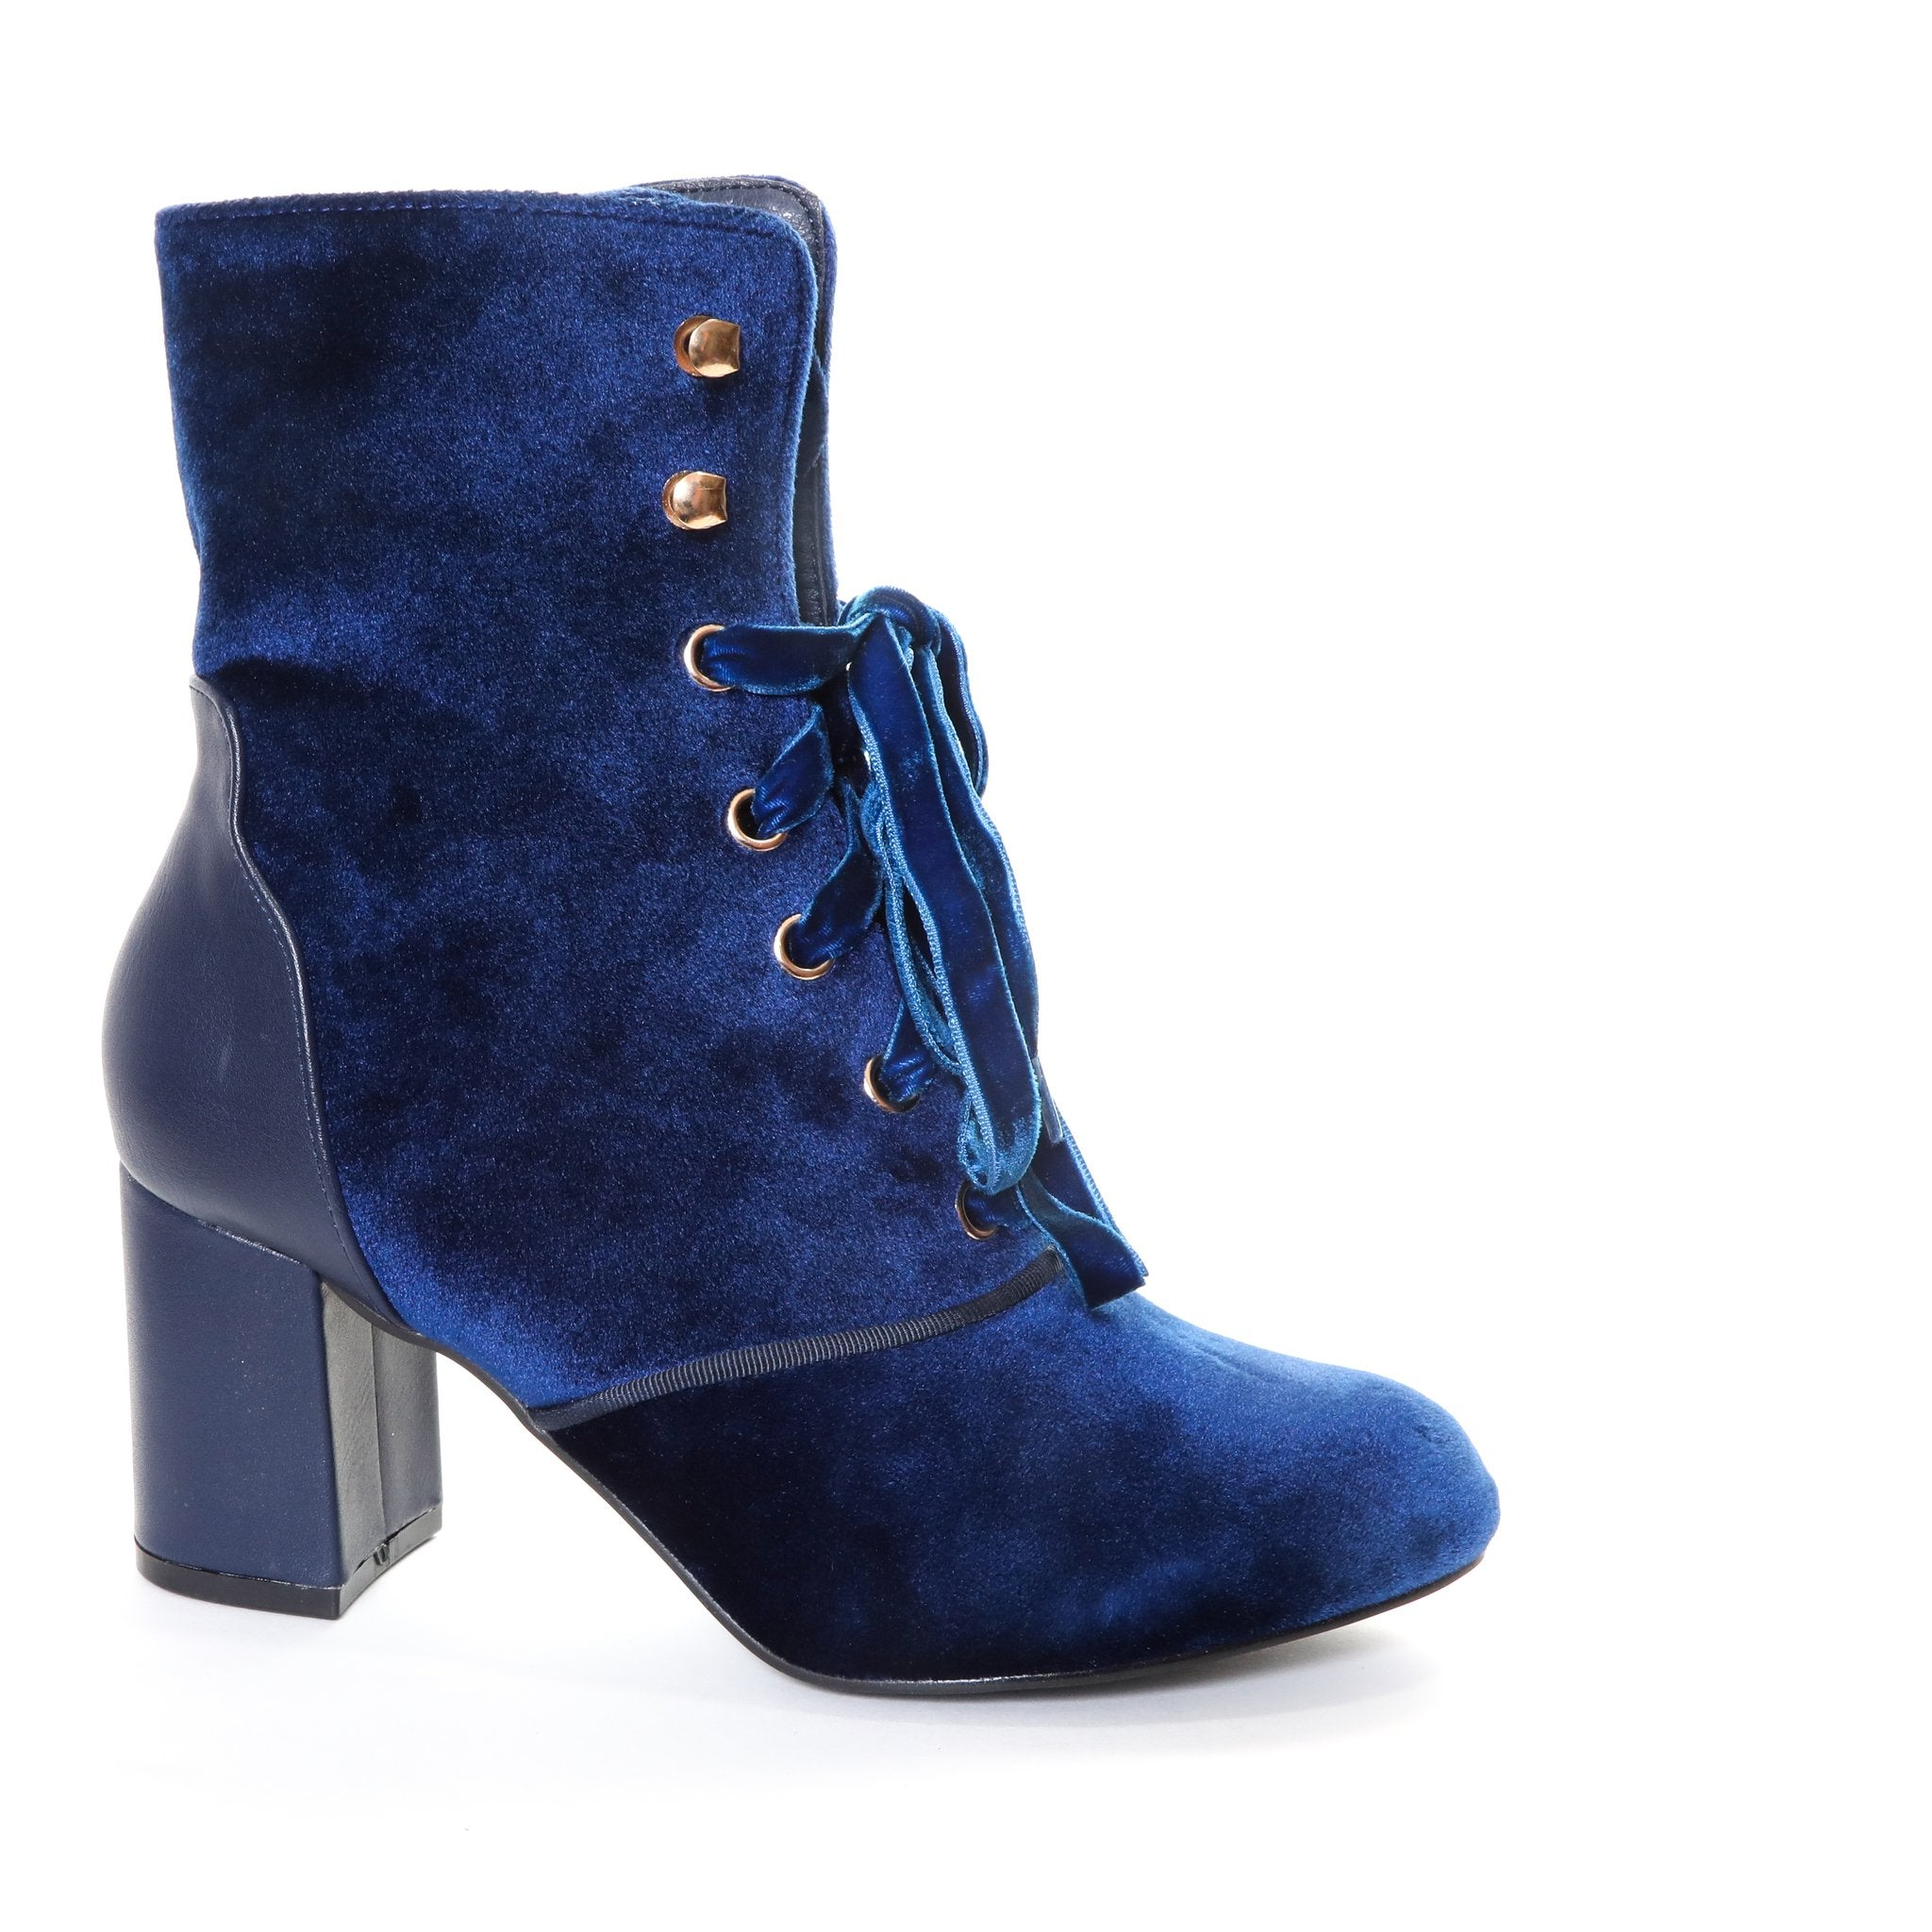 Claudia by Dolce Nome | Lace Up Heel Boots in Blue (side view)